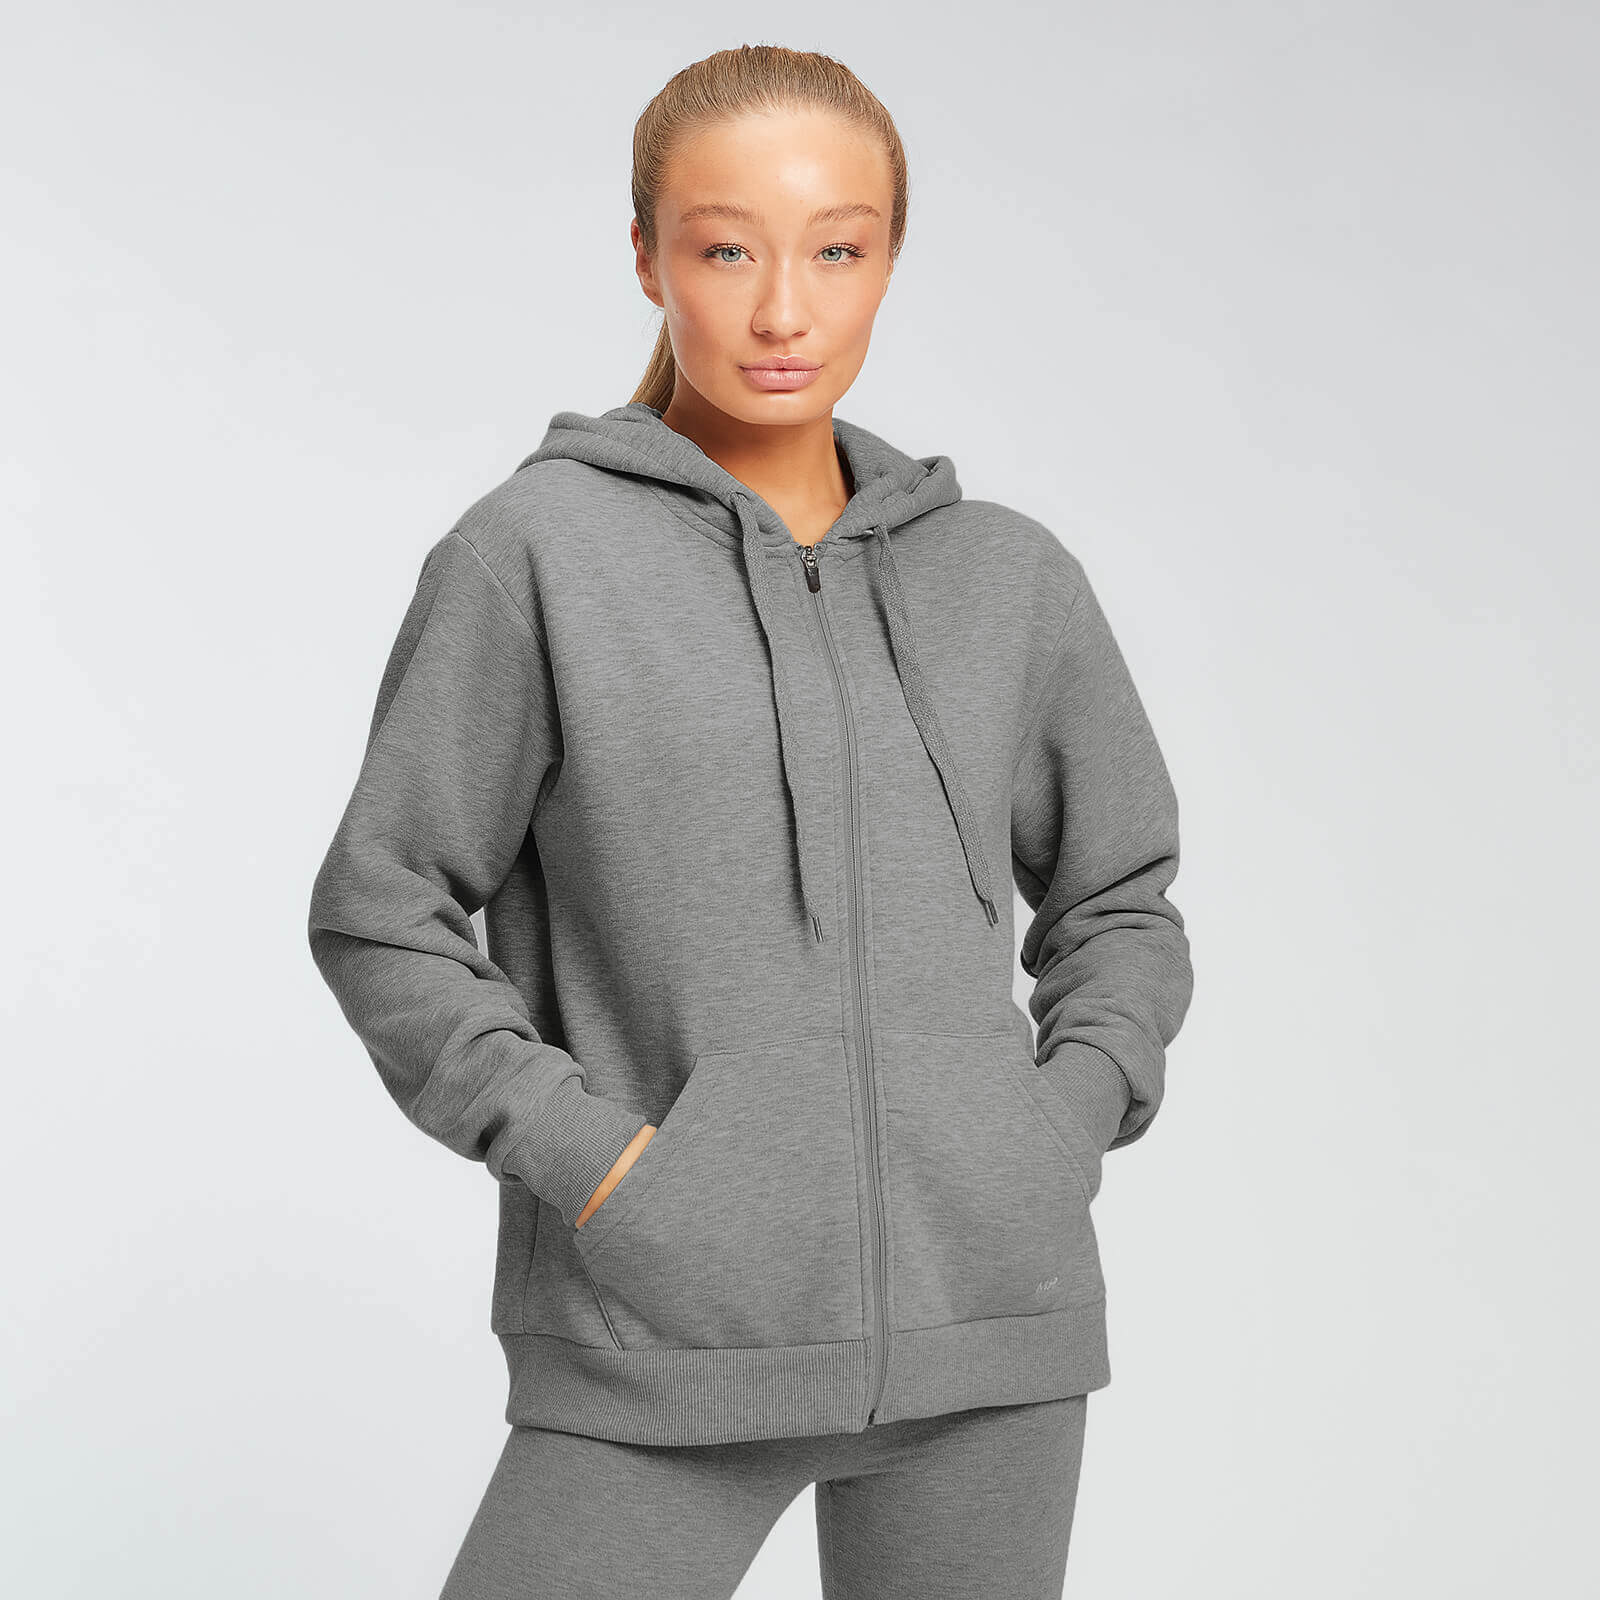 Sweat à capuche zippé MP Essentials pour femmes – Gris chiné - XS